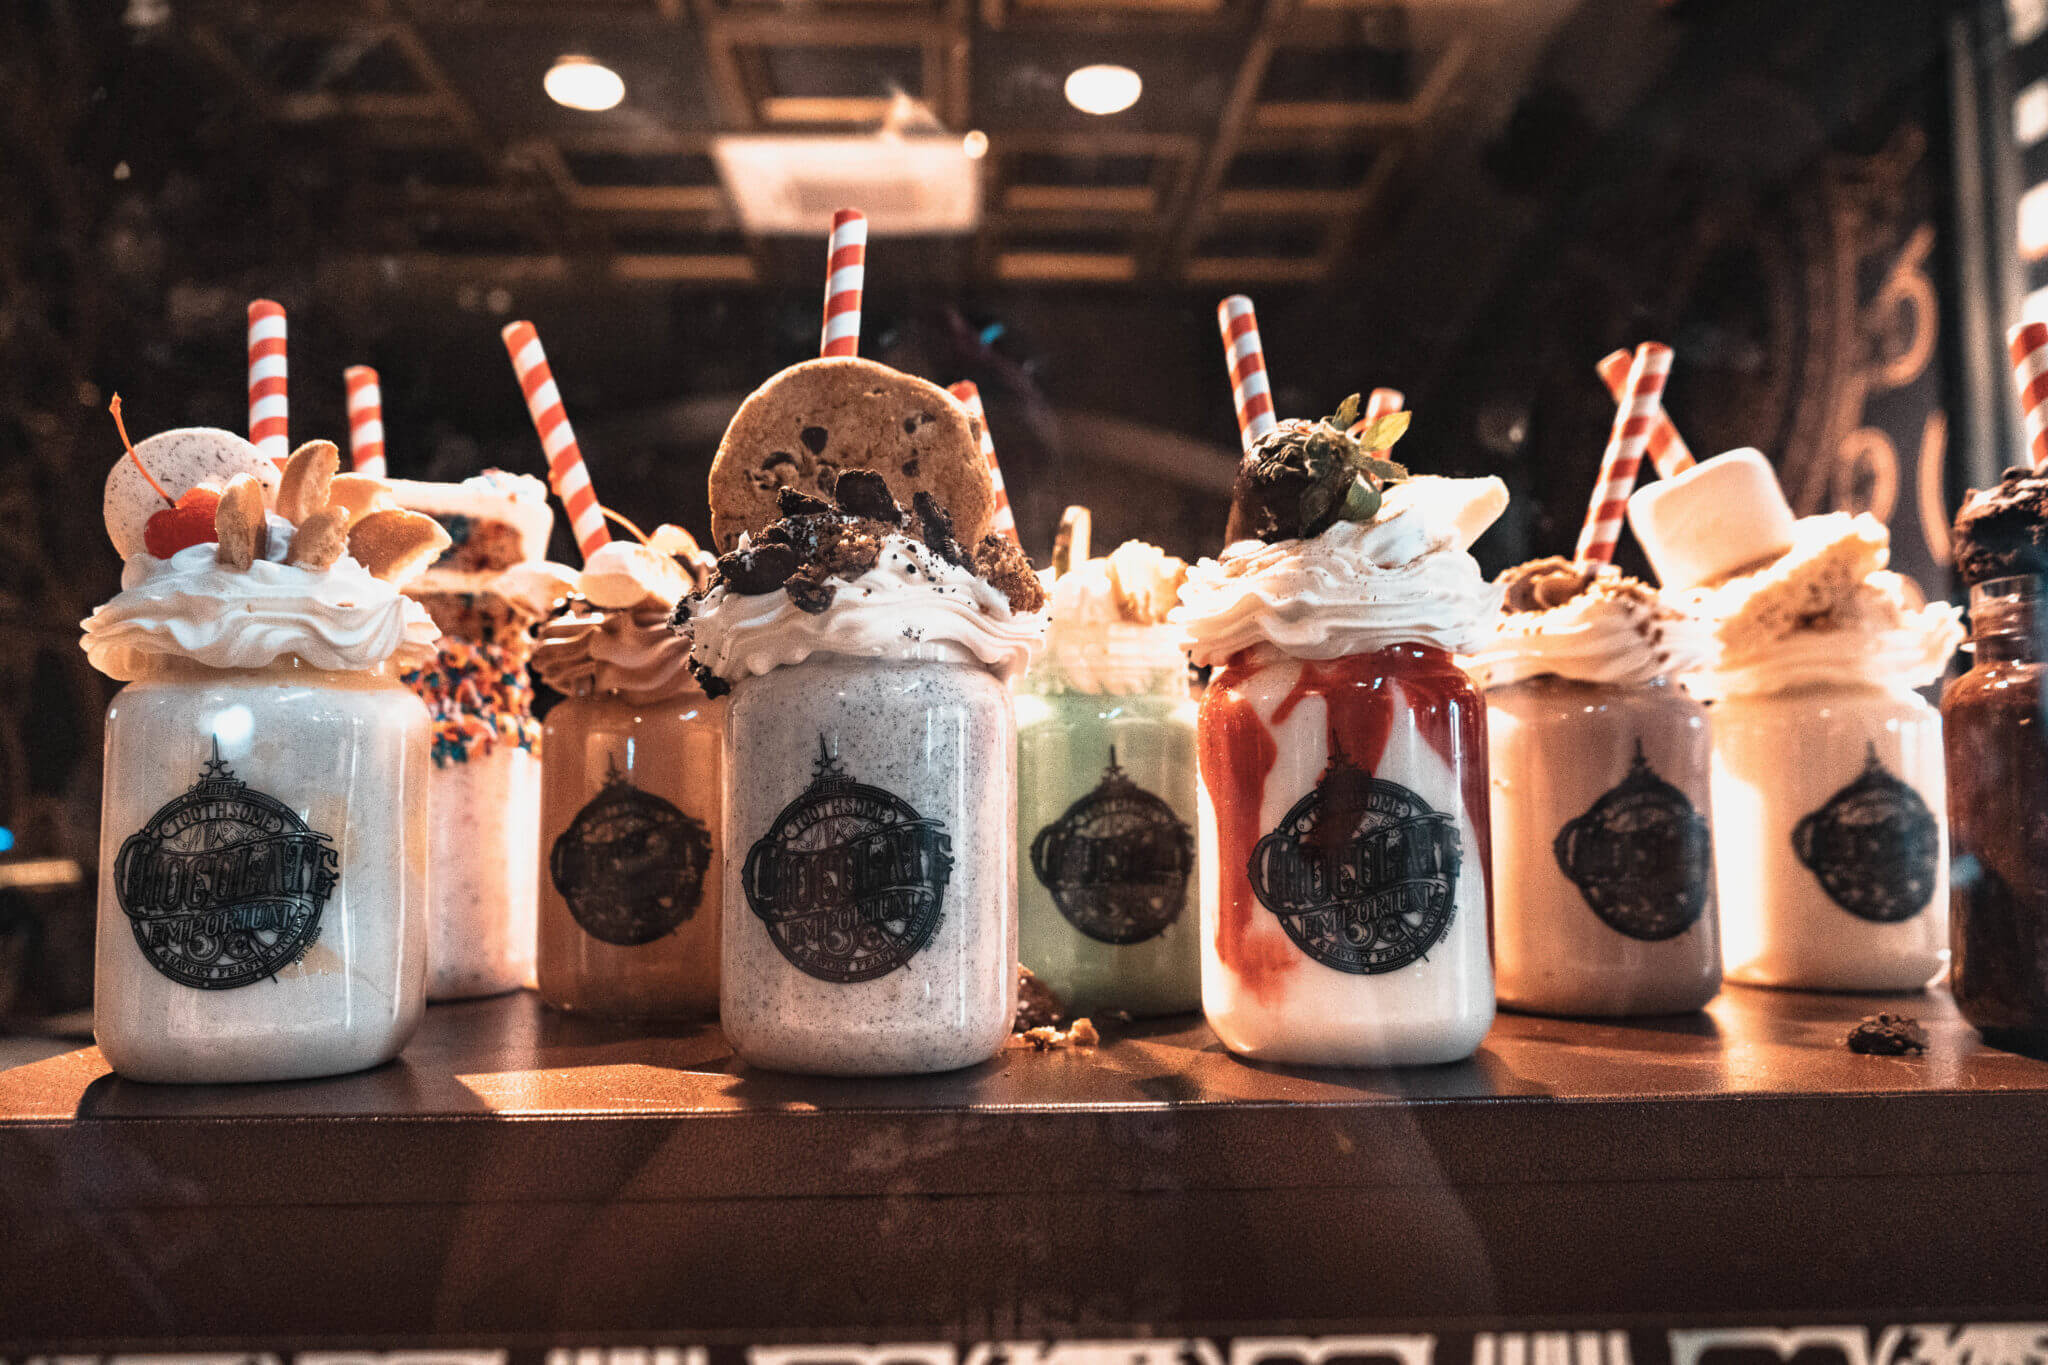 Display of chocolate, red velvet, and marshmallow milkshakes from Toothsome Chocolate Emporium and Savory Feast Kitchen in Universal Studios CityWalk